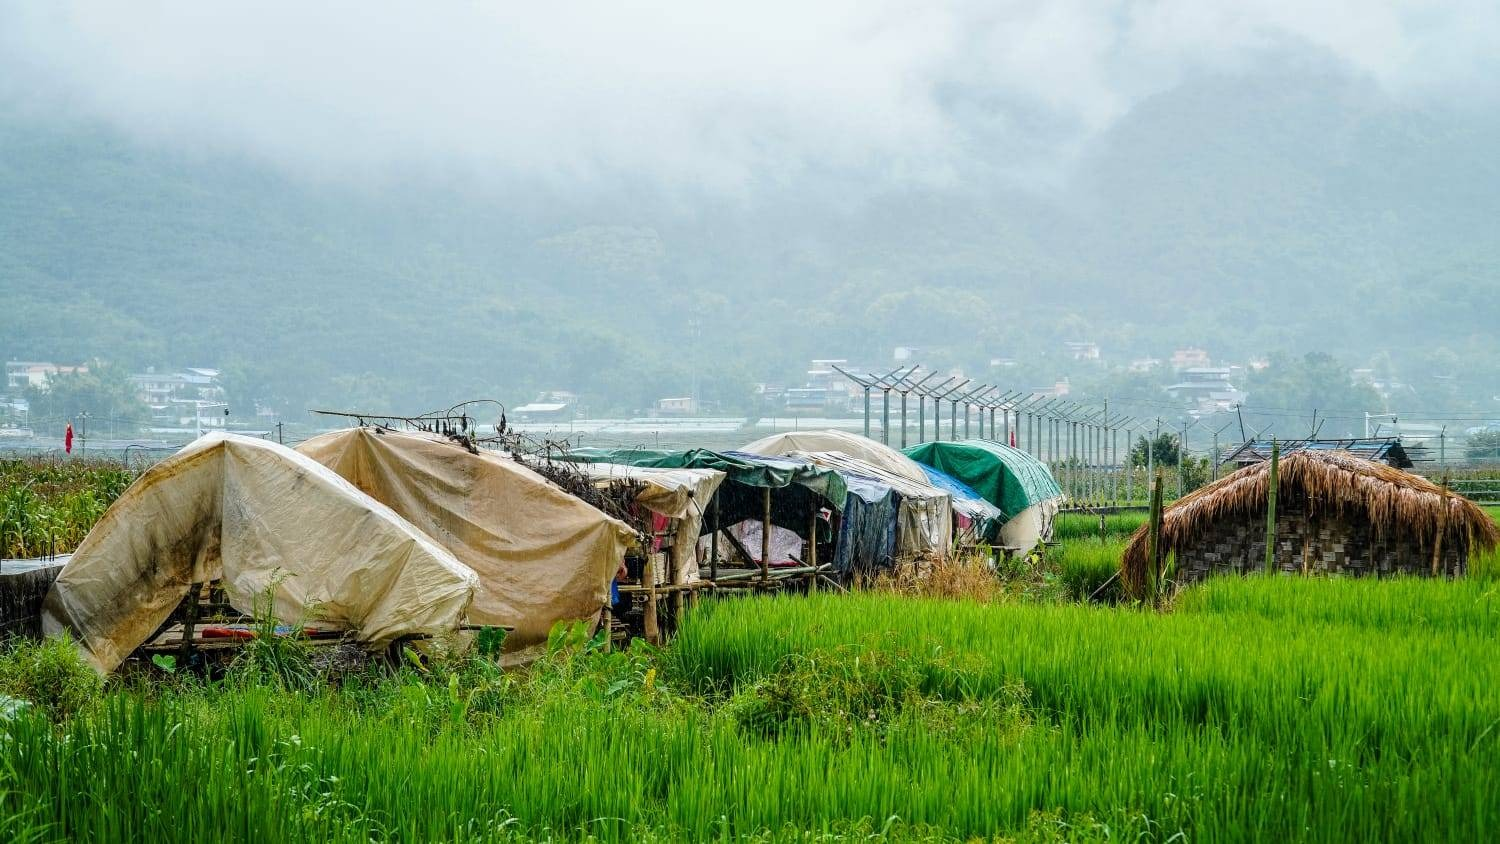 Families displaced by fighting in the Mong Ko area shelter in the town of Pang Hseng, with the newly built Chinese border wall in the background. (Mai Nyi Win Maung | Frontier)